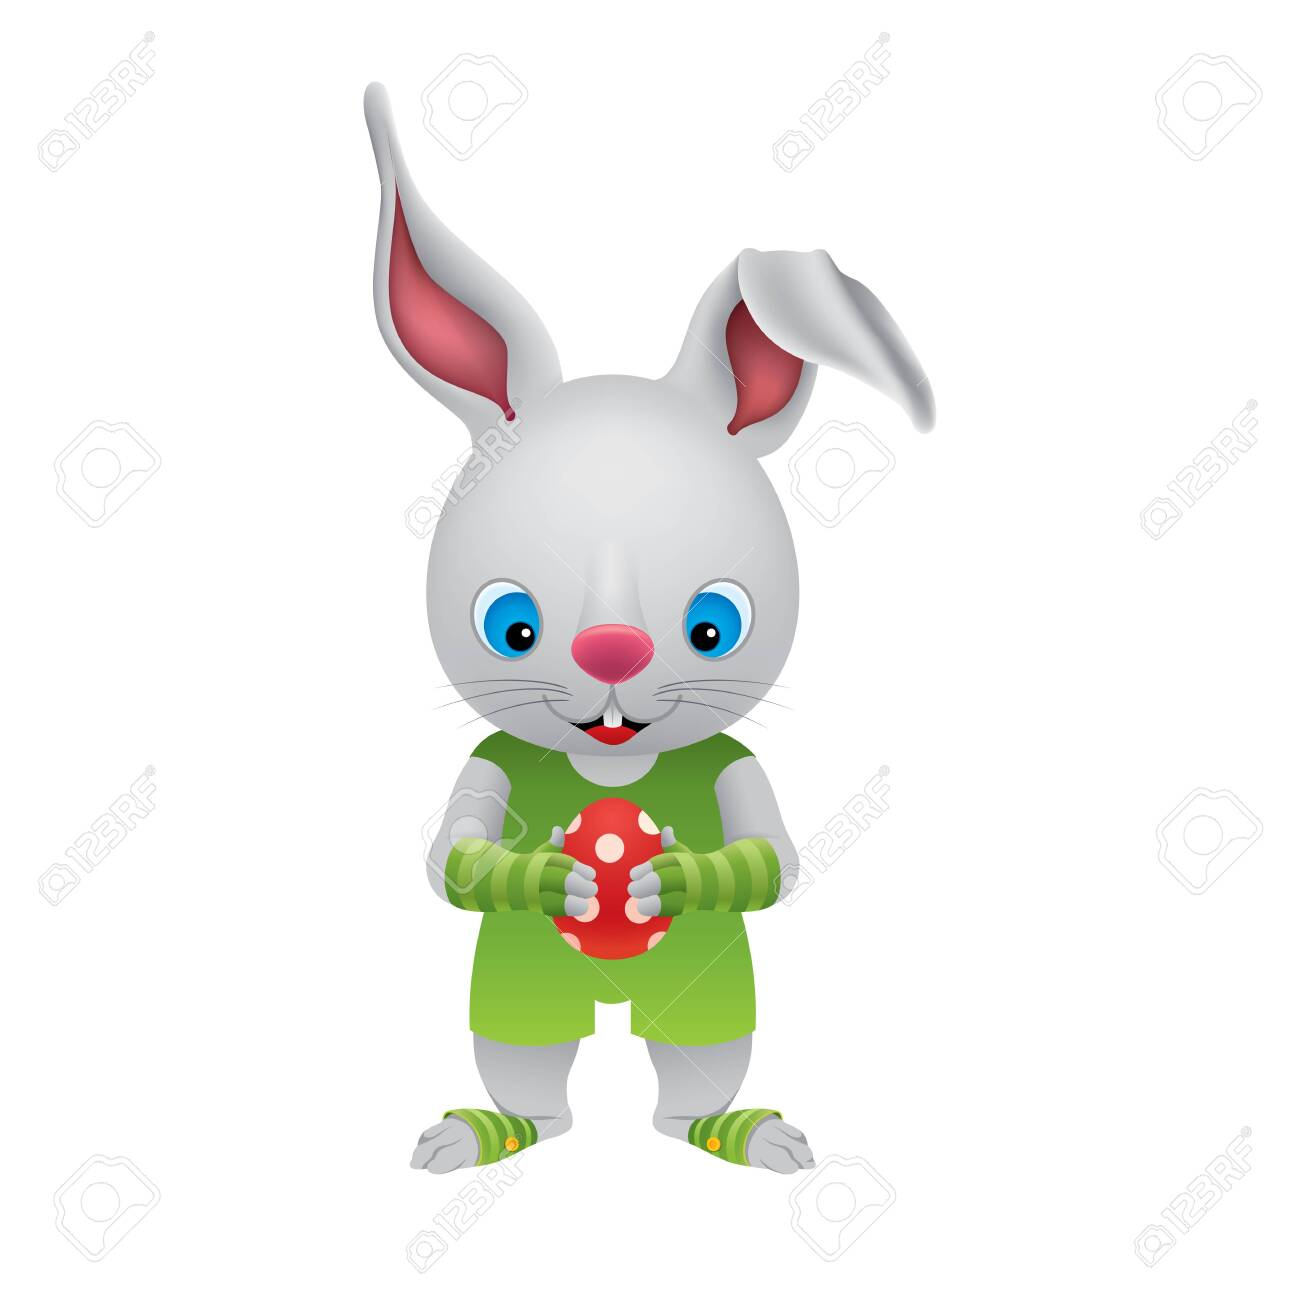 The Easter Bunny holds a red polka dot Easter egg in its paws.